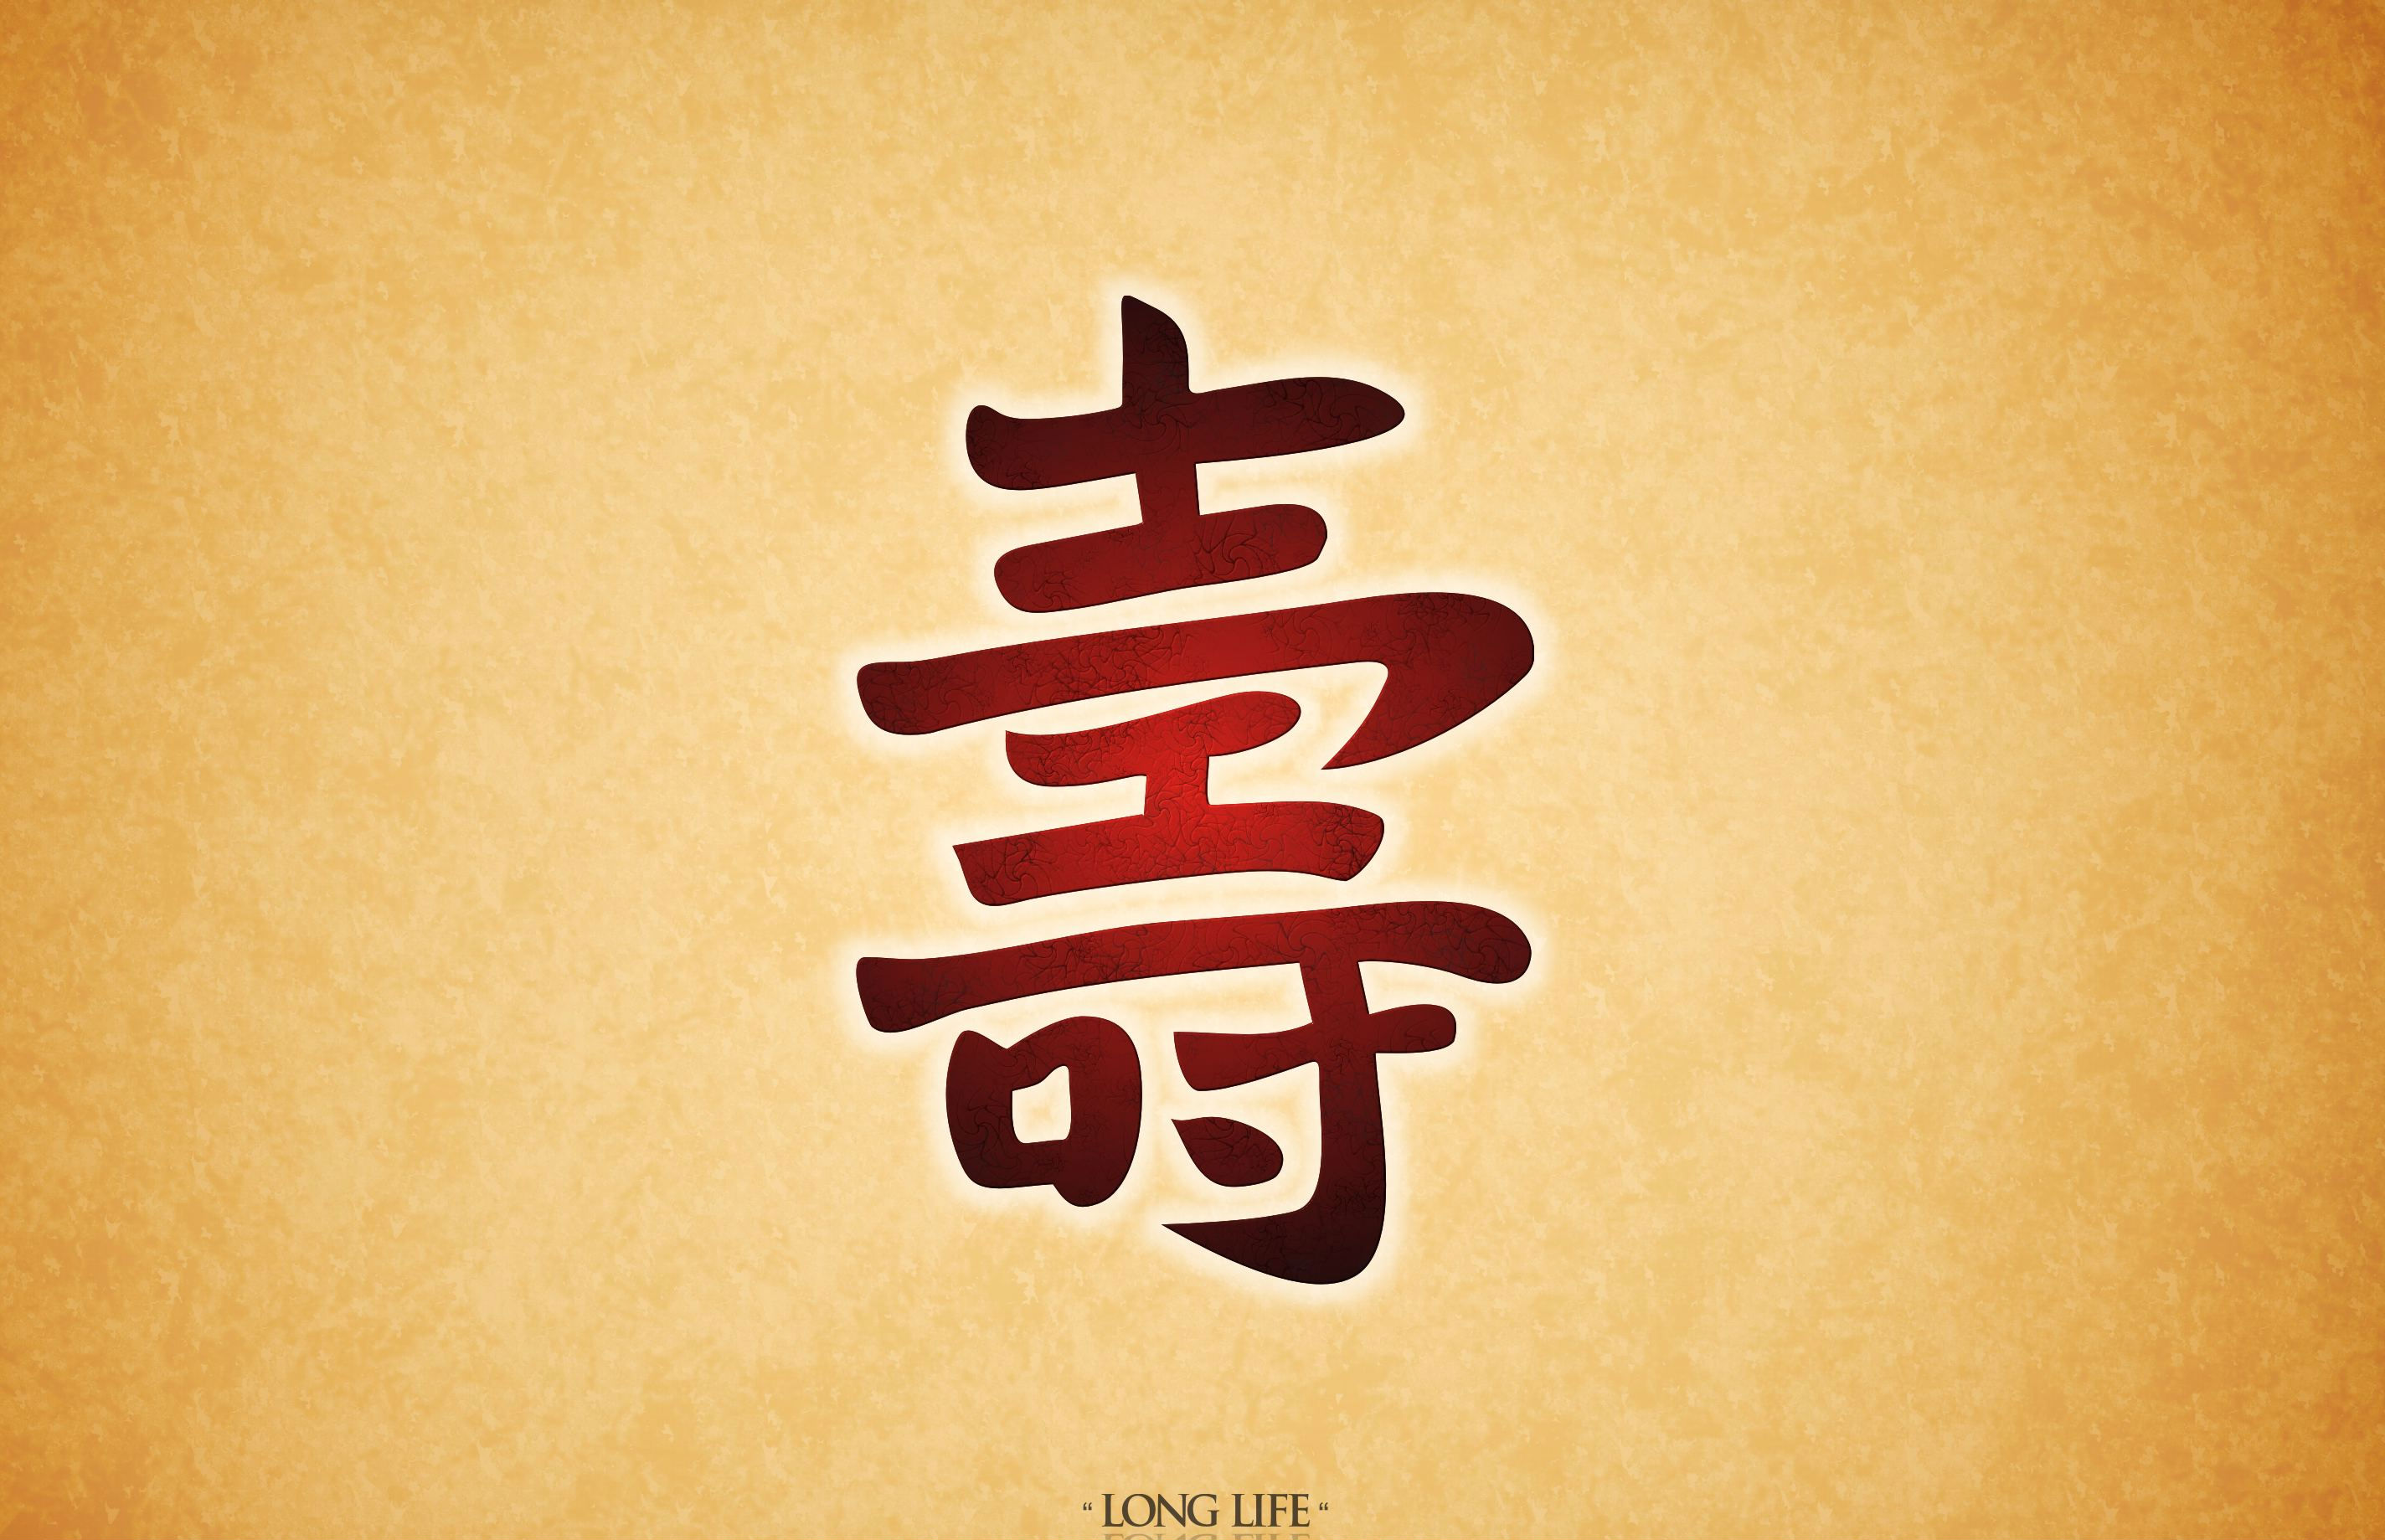 Chinese Calligraphy Wallpaper Hd Long Life In Chinese Hd Wallpaper Background Image